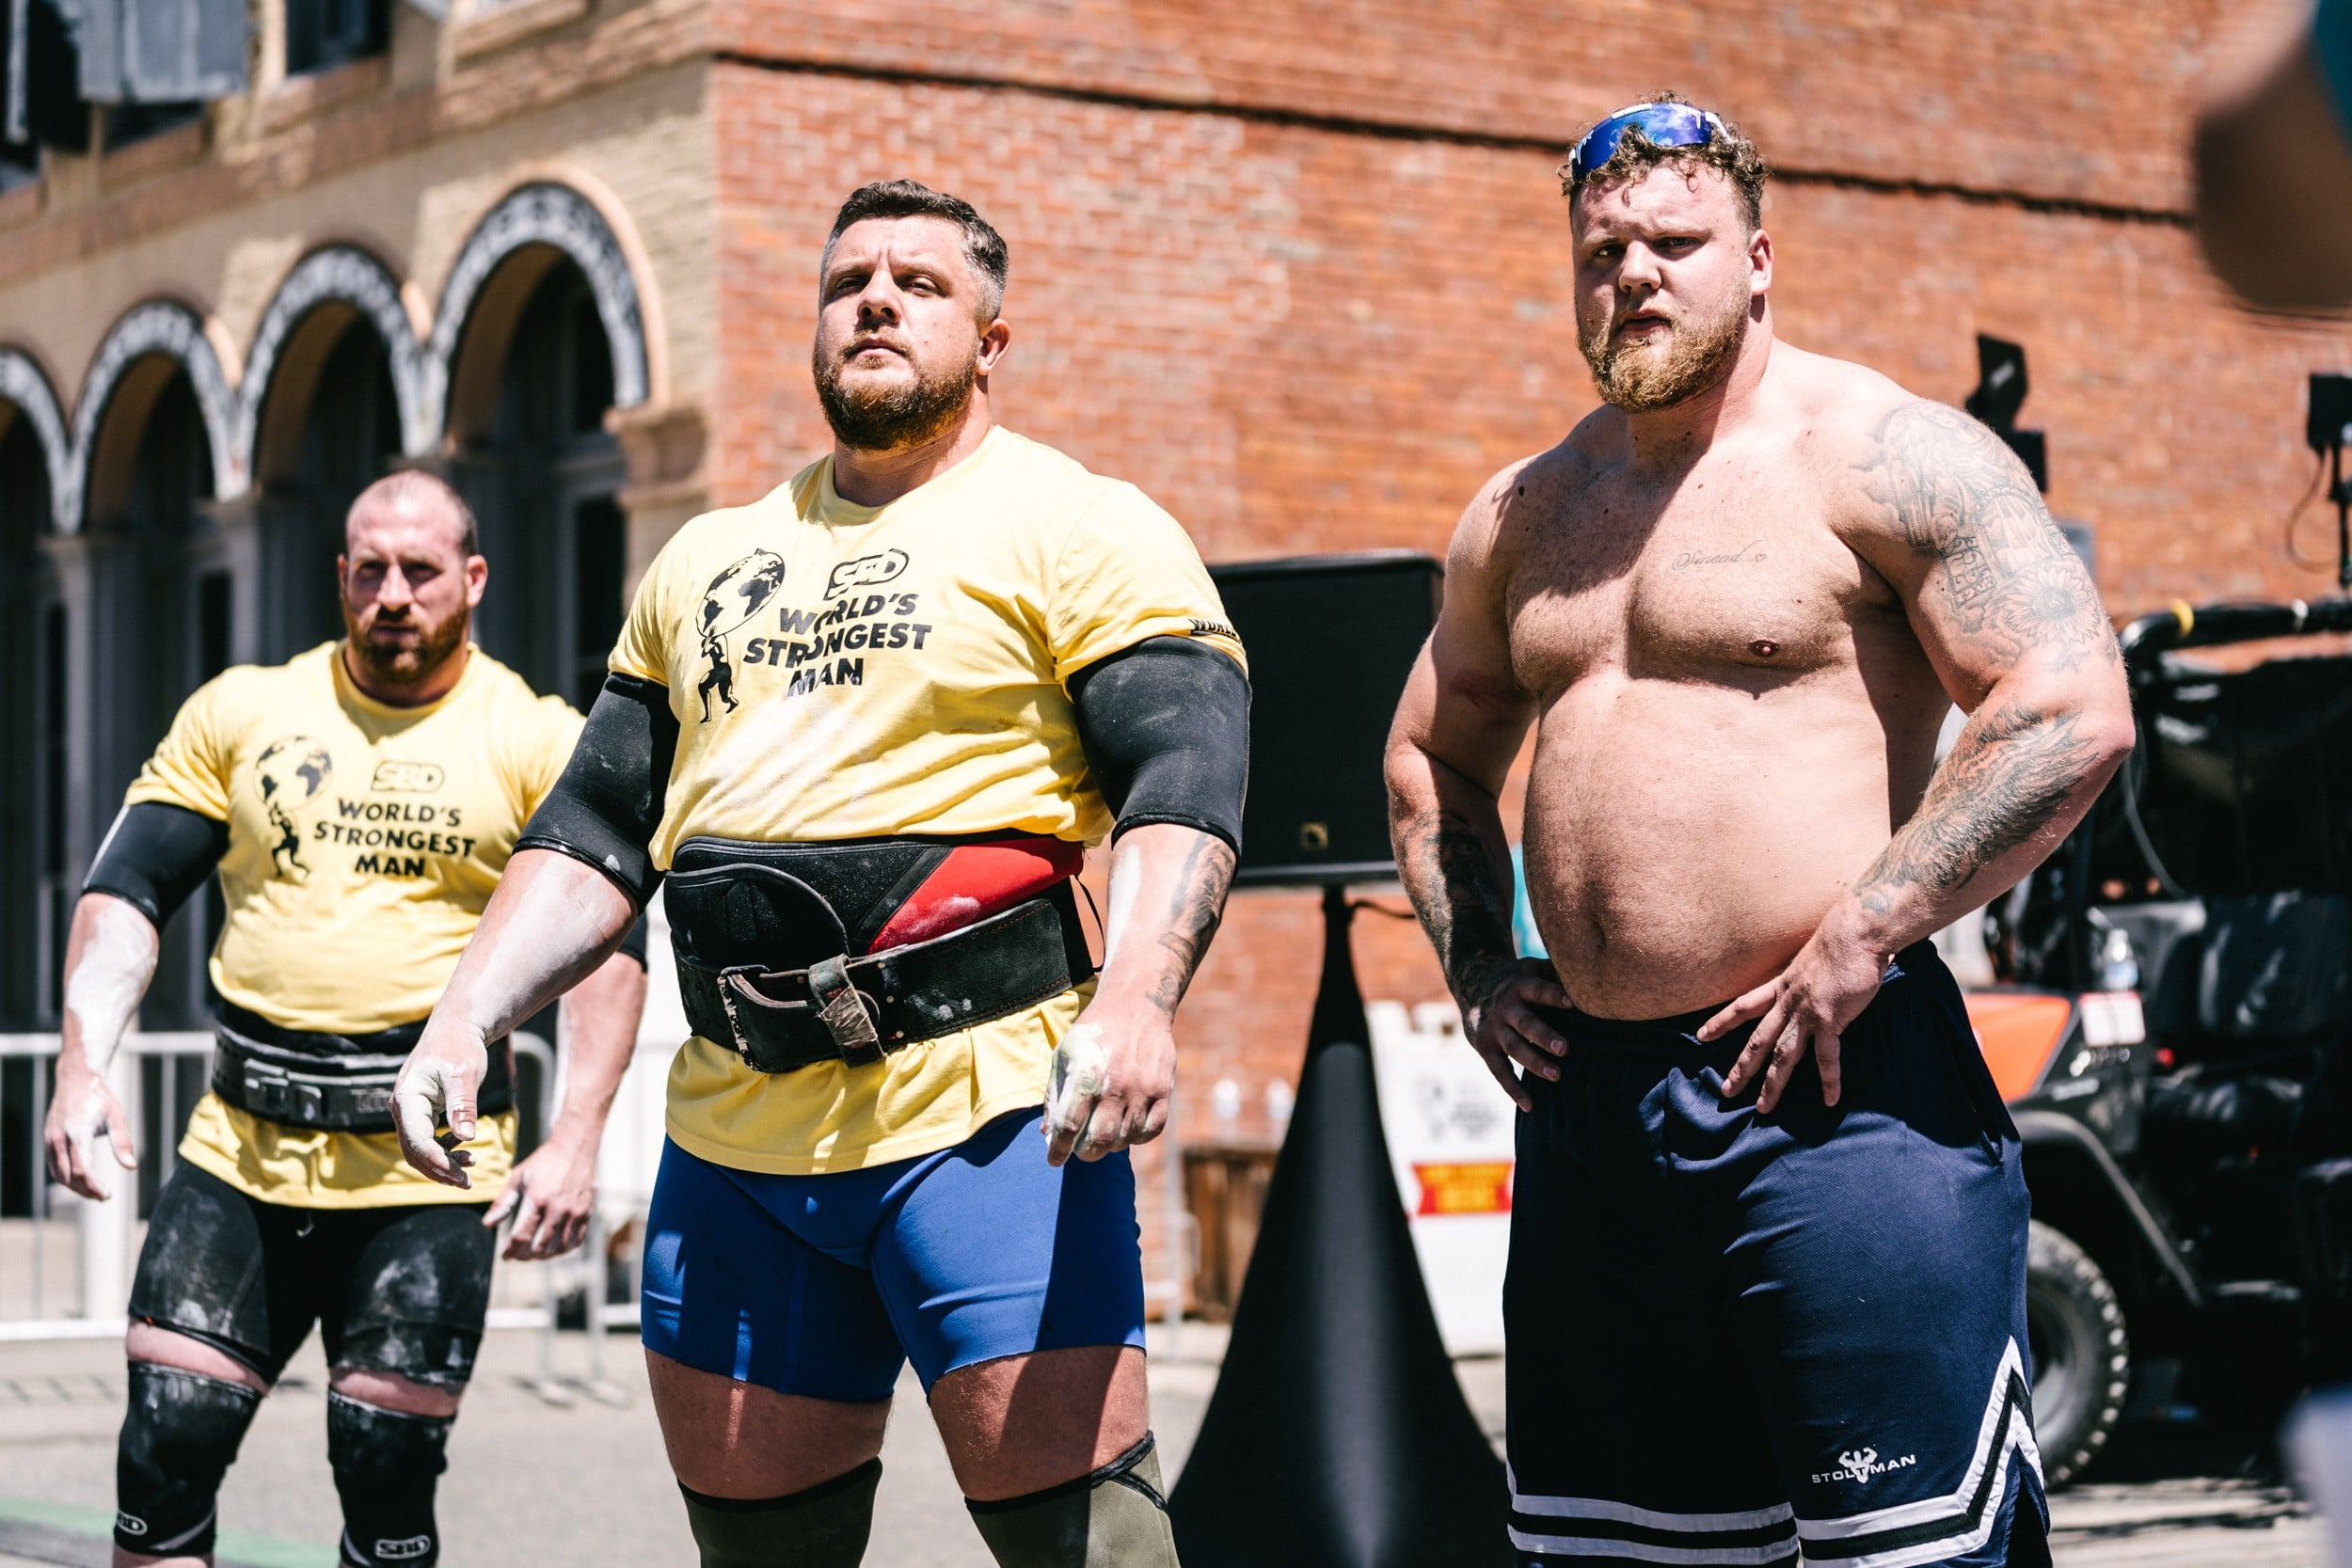 Kevin Faires Usa Sbd Worlda€™s Strongest Man 2021 Day 1